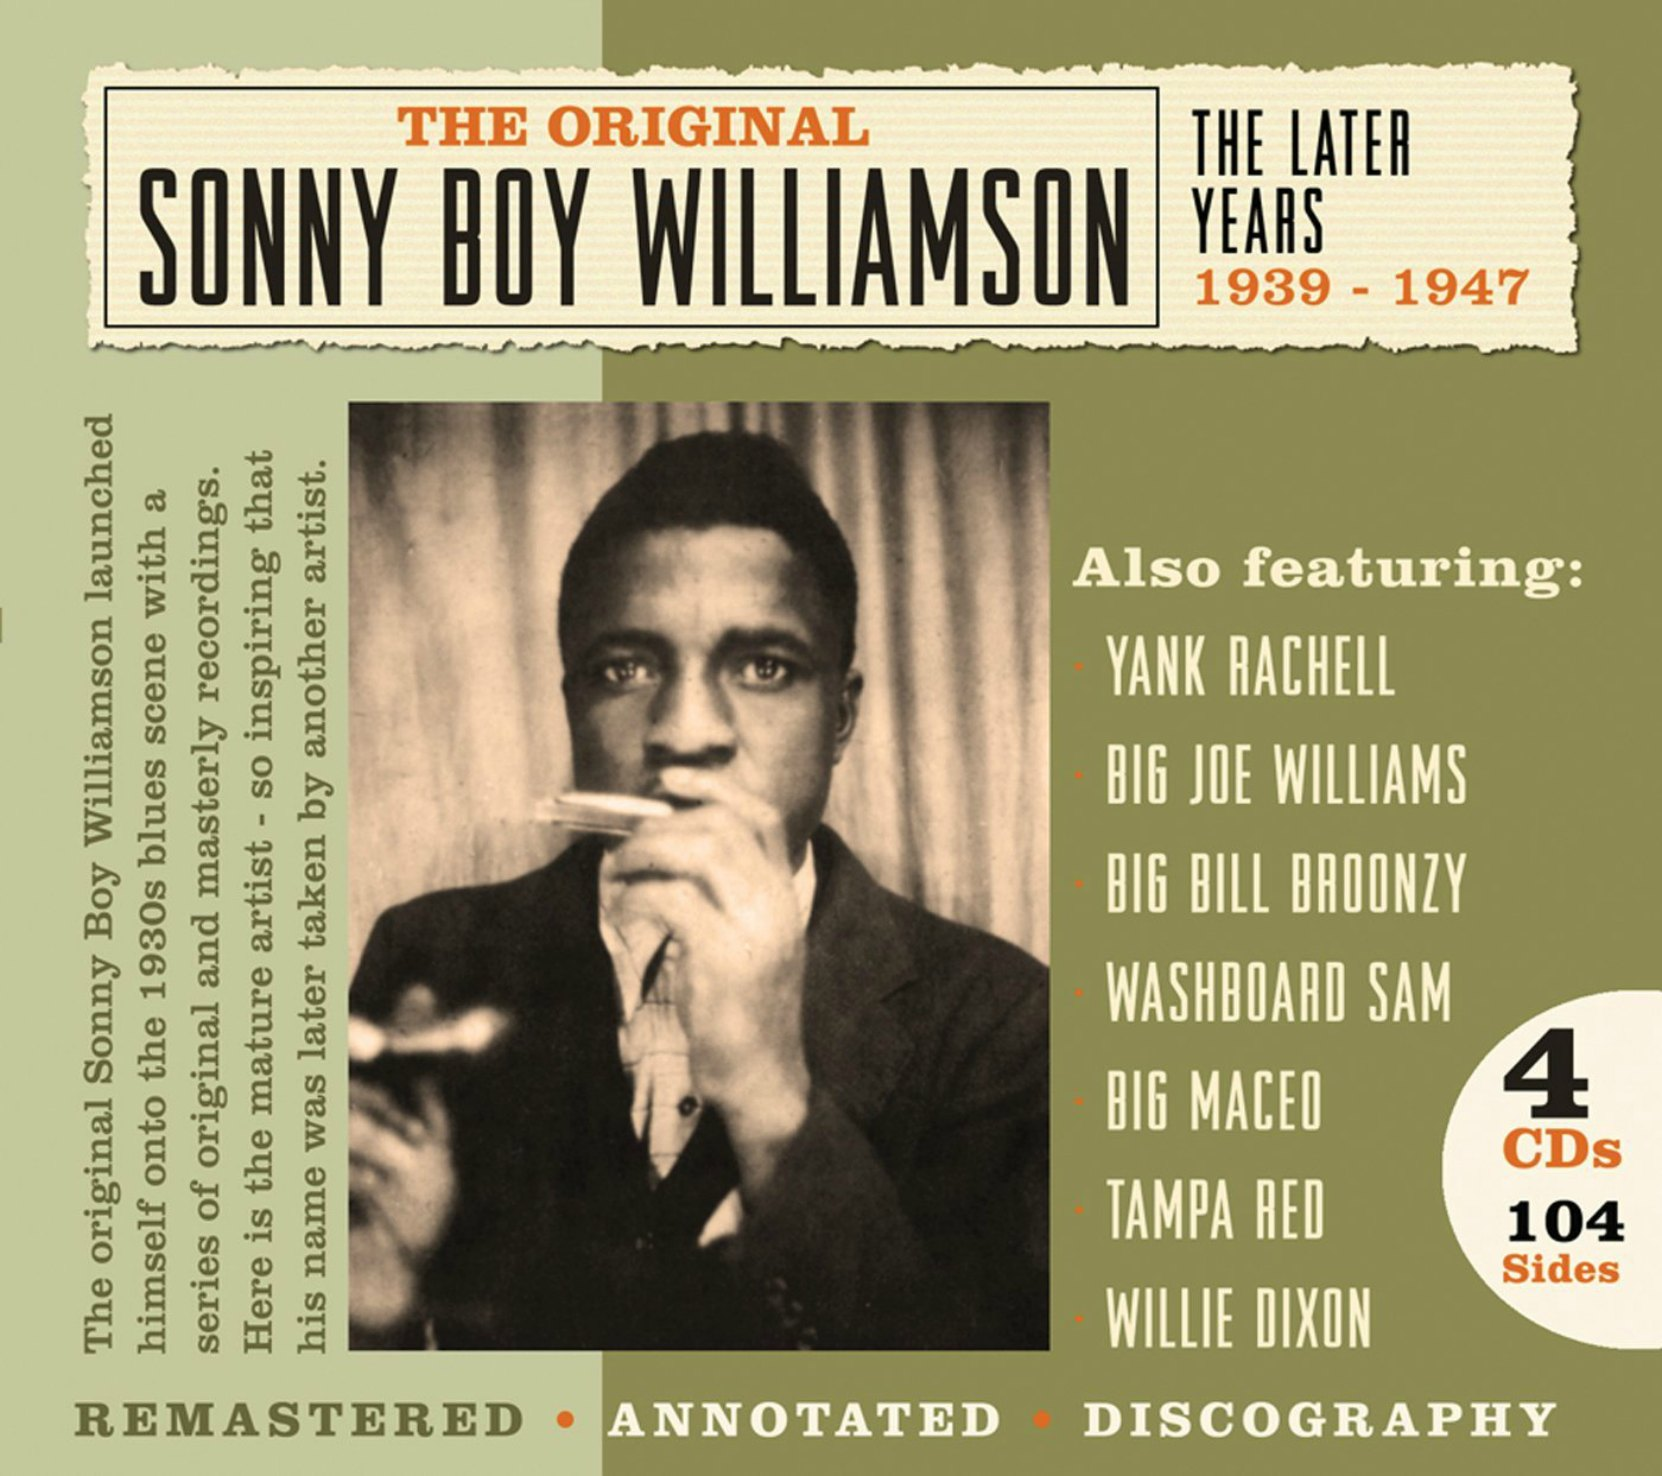 CD cover,Sonny Boy Williamson, The Later Years 1939-1947, a 4 CD, 104 track set released on JSP Records